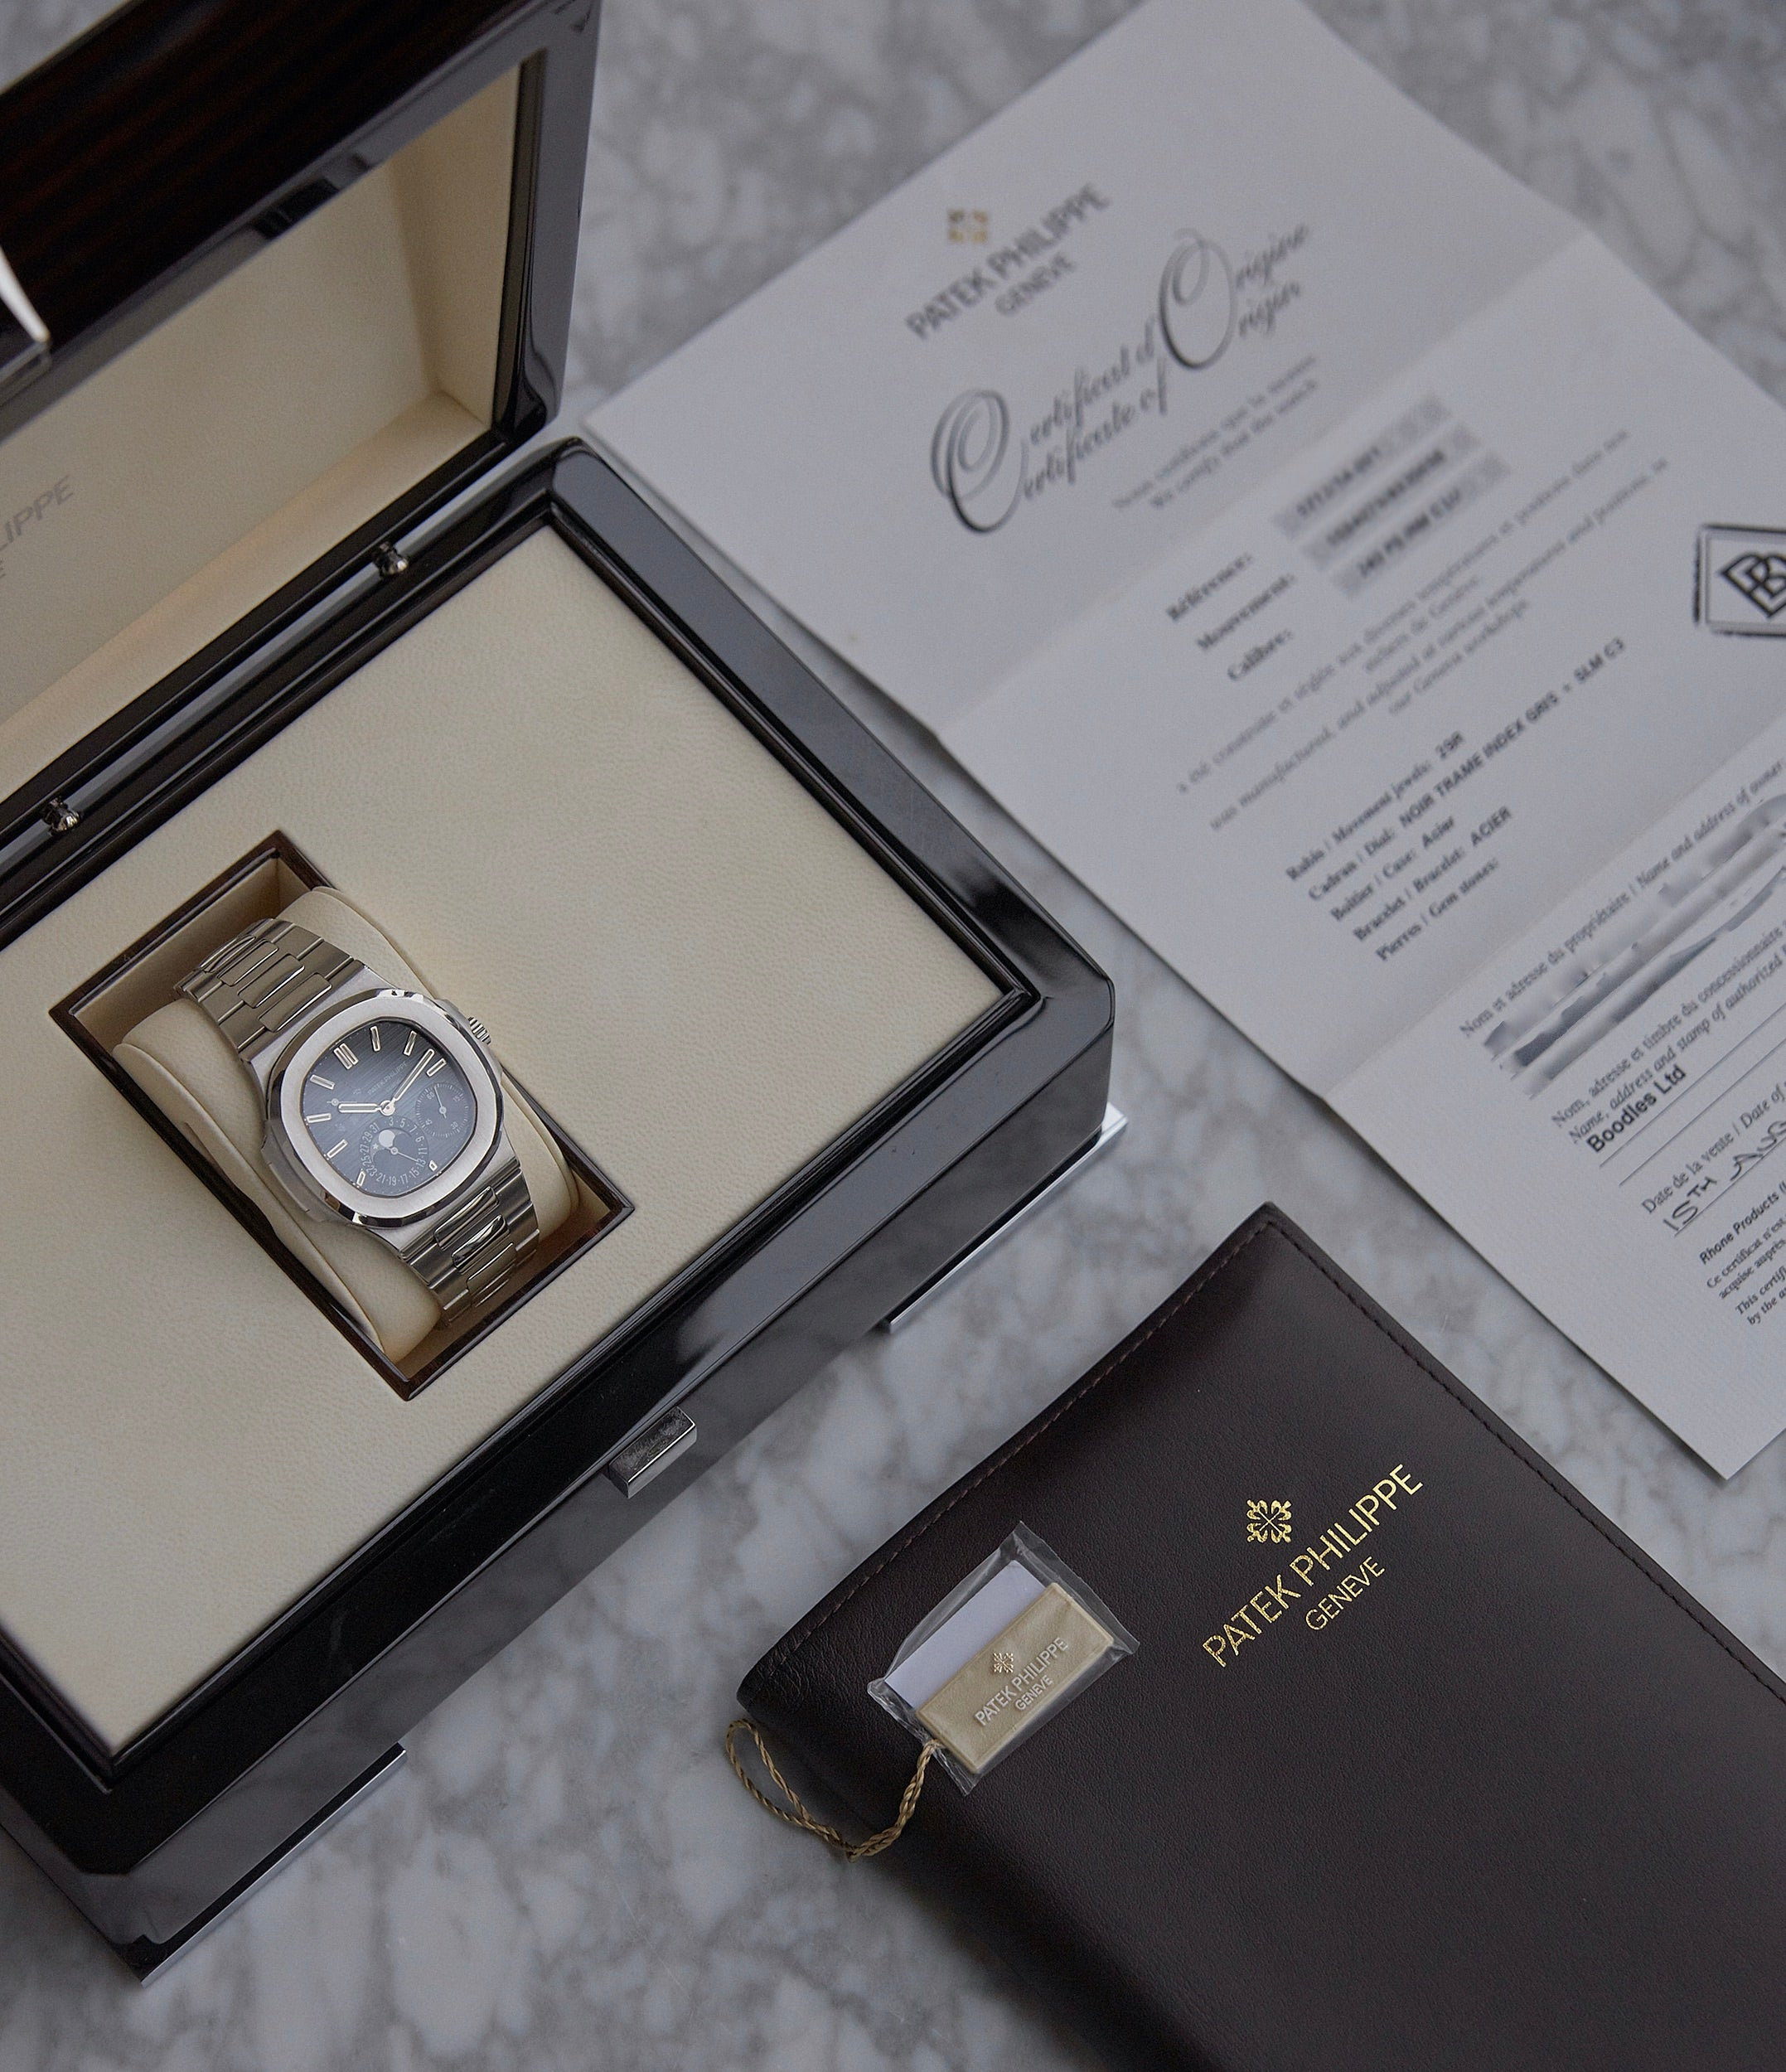 buy pre-owned Patek Philippe Nautilus 5712/1A-001 steel moon phase luxury sports watch for sale online A Collected Man London UK specialist rare watches